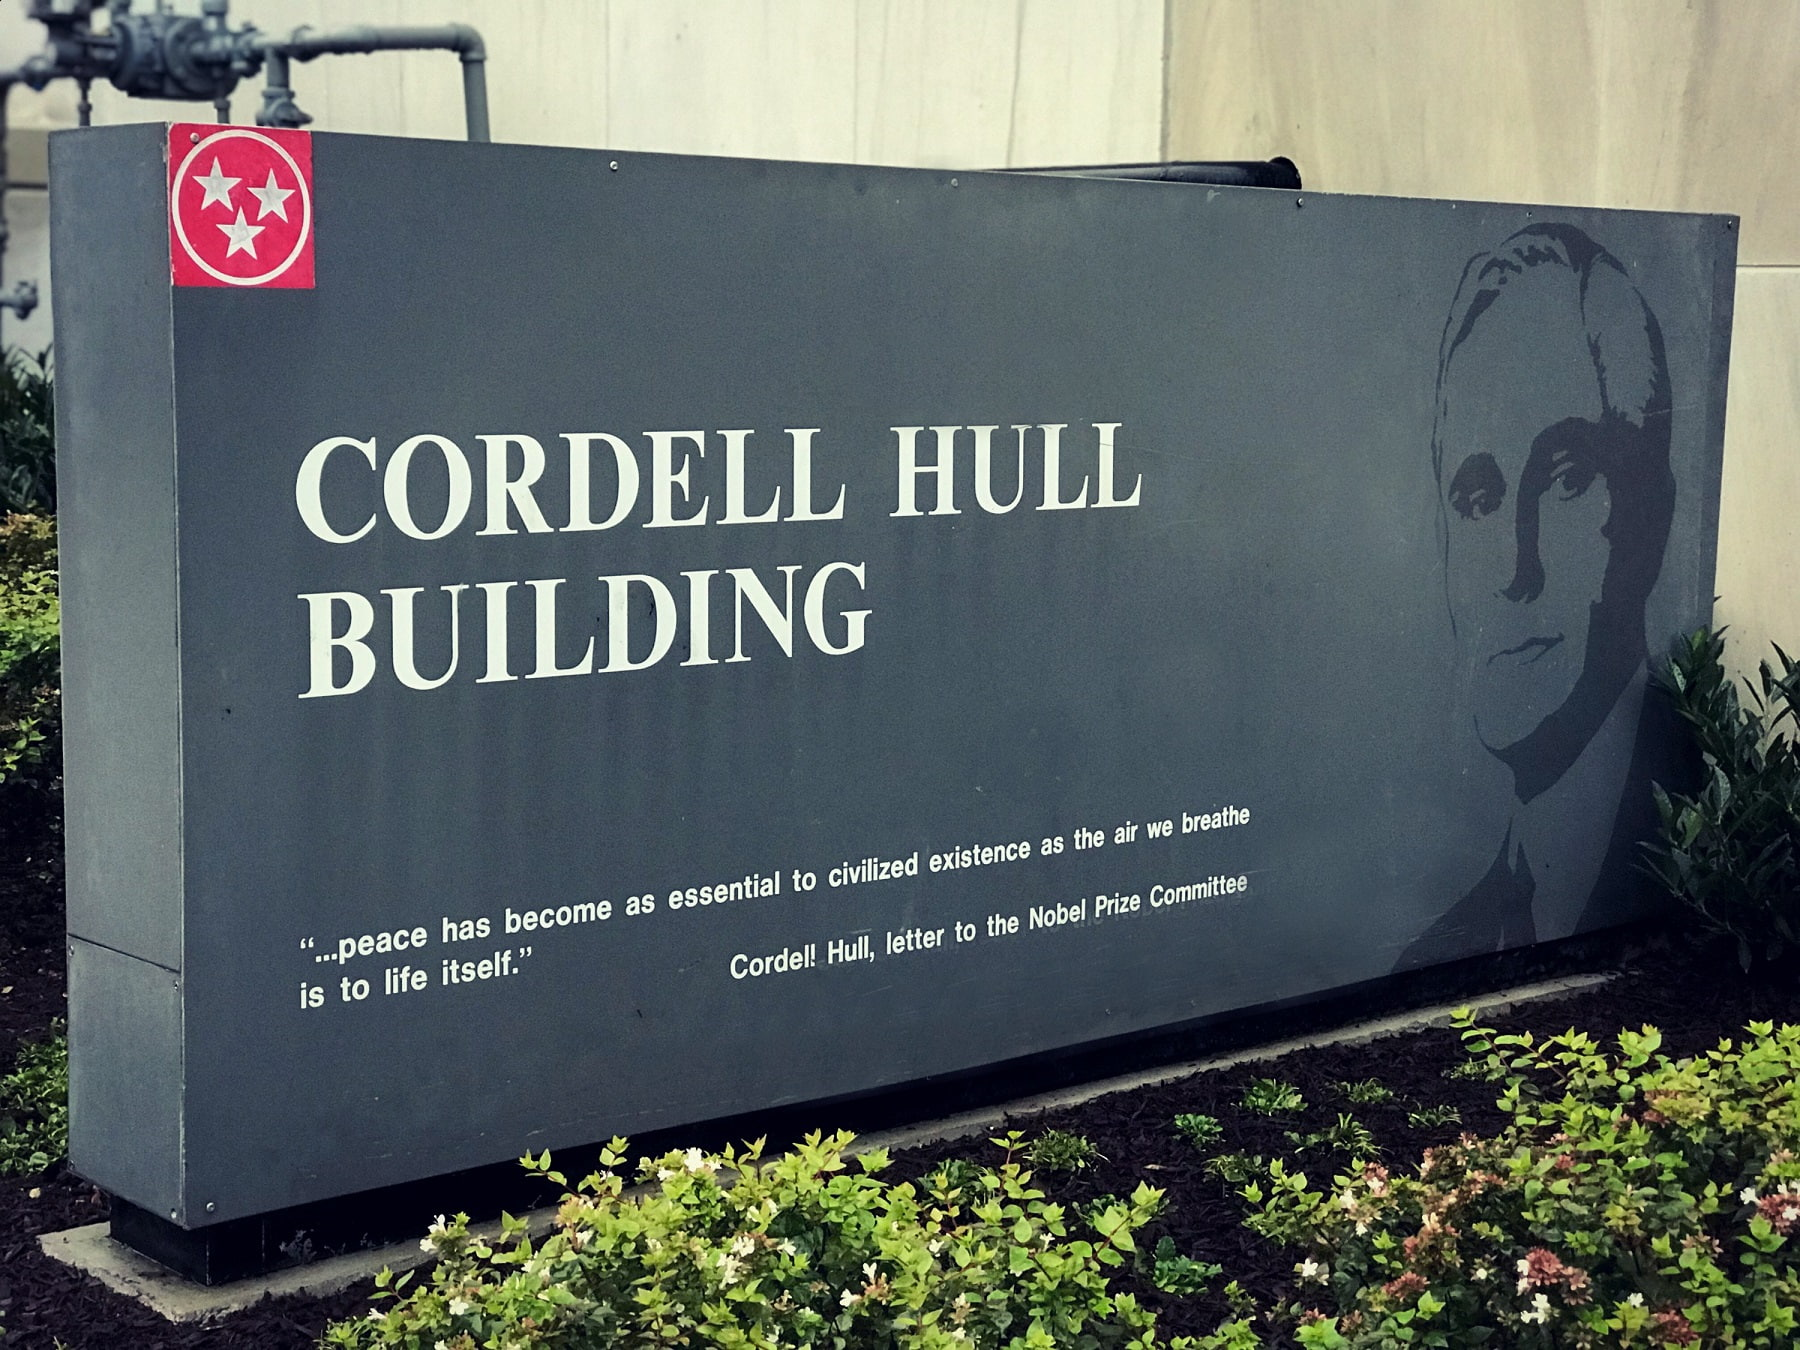 picture of sign for Cordell Hull Building in TN